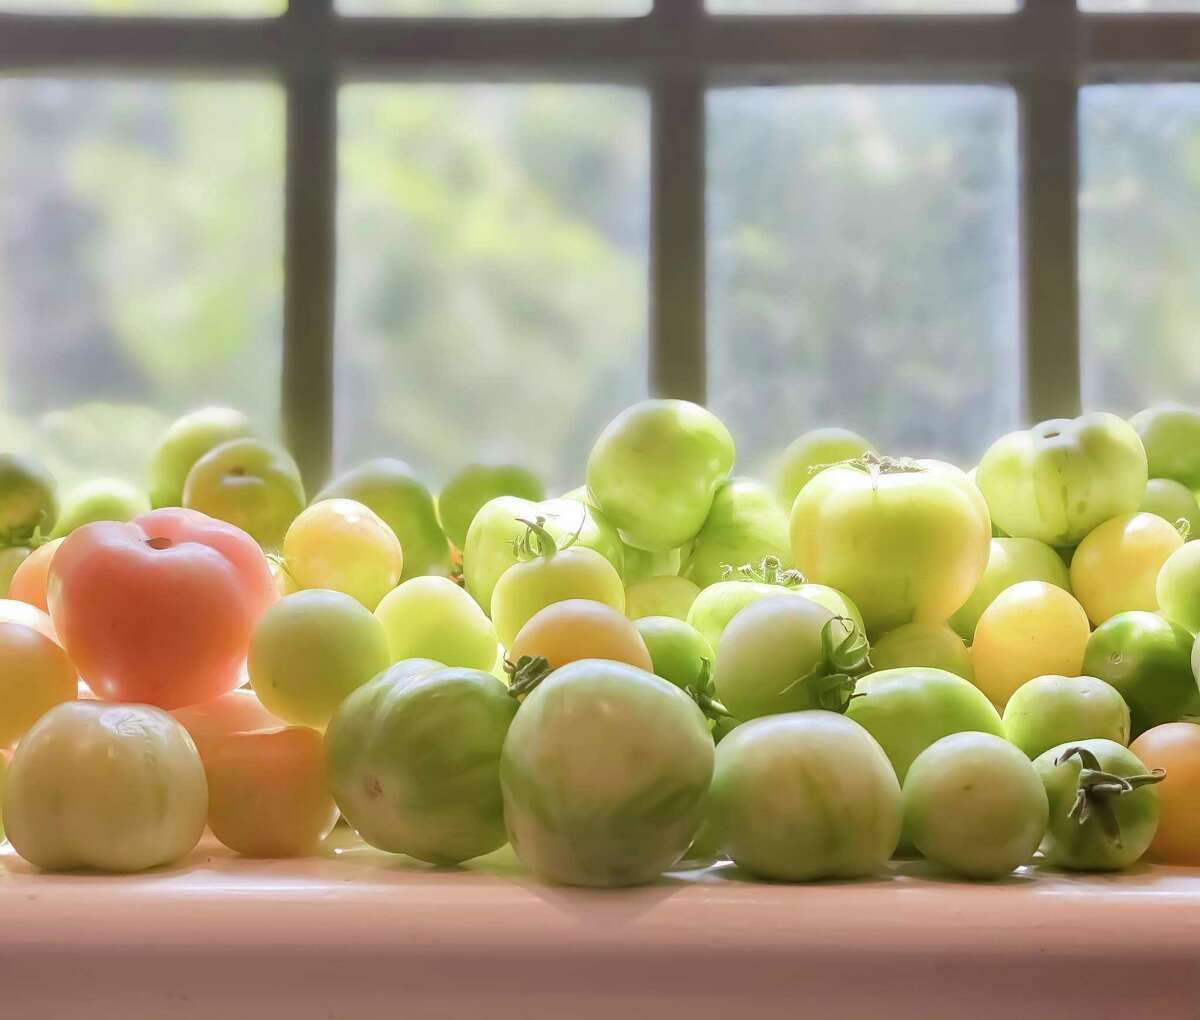 Storing underripe tomatoes in a sunny window can help them ripen faster.